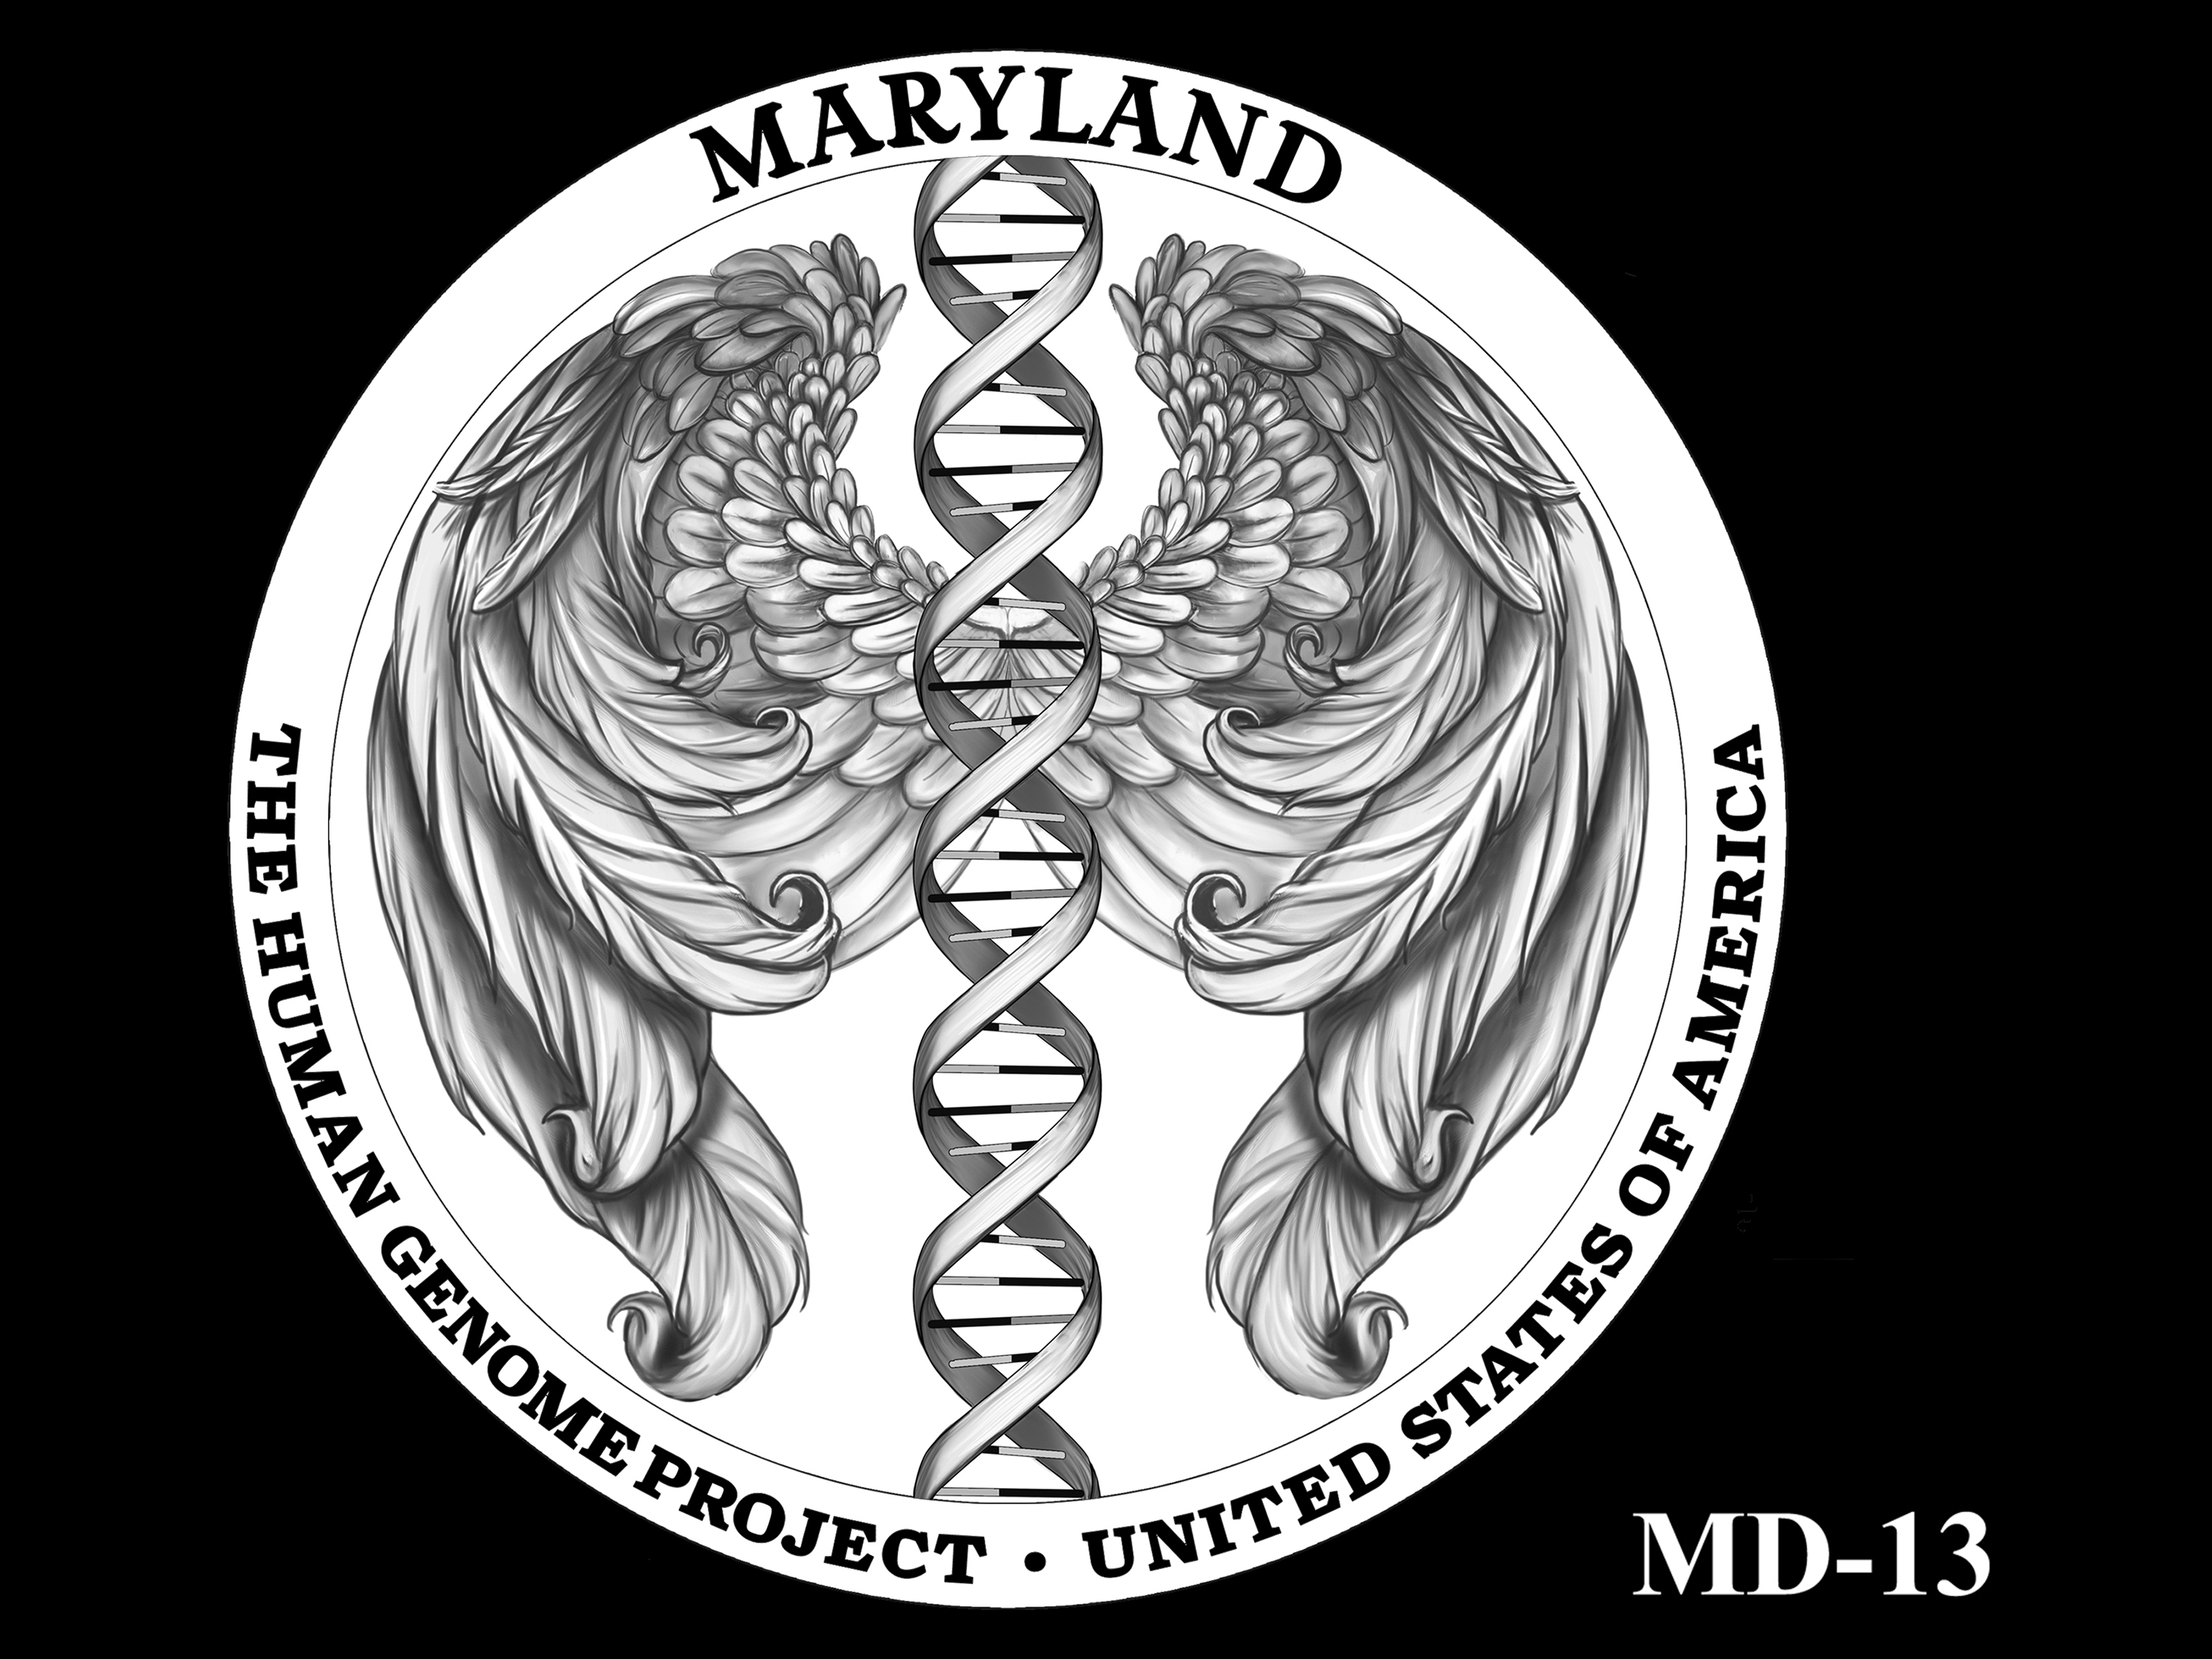 MD-13 -- 2020 American Innovation $1 Coin - Maryland